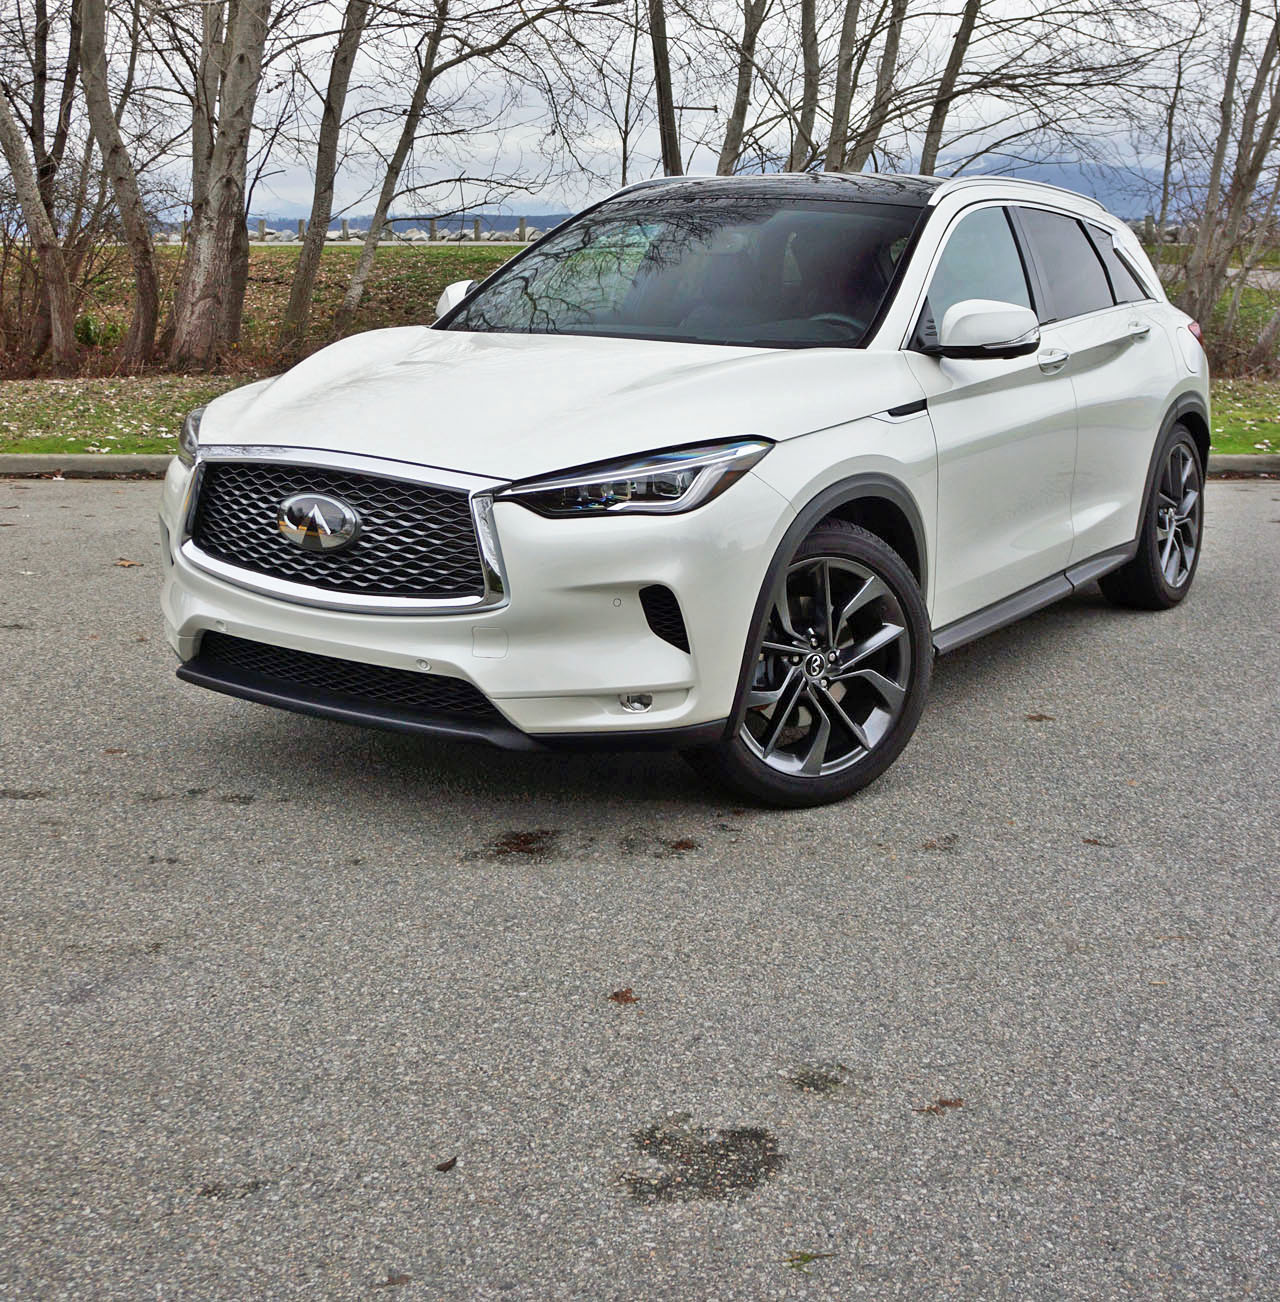 2019 Bentley Cost New Review: 2019 Infiniti QX50 Sensory Road Test Review